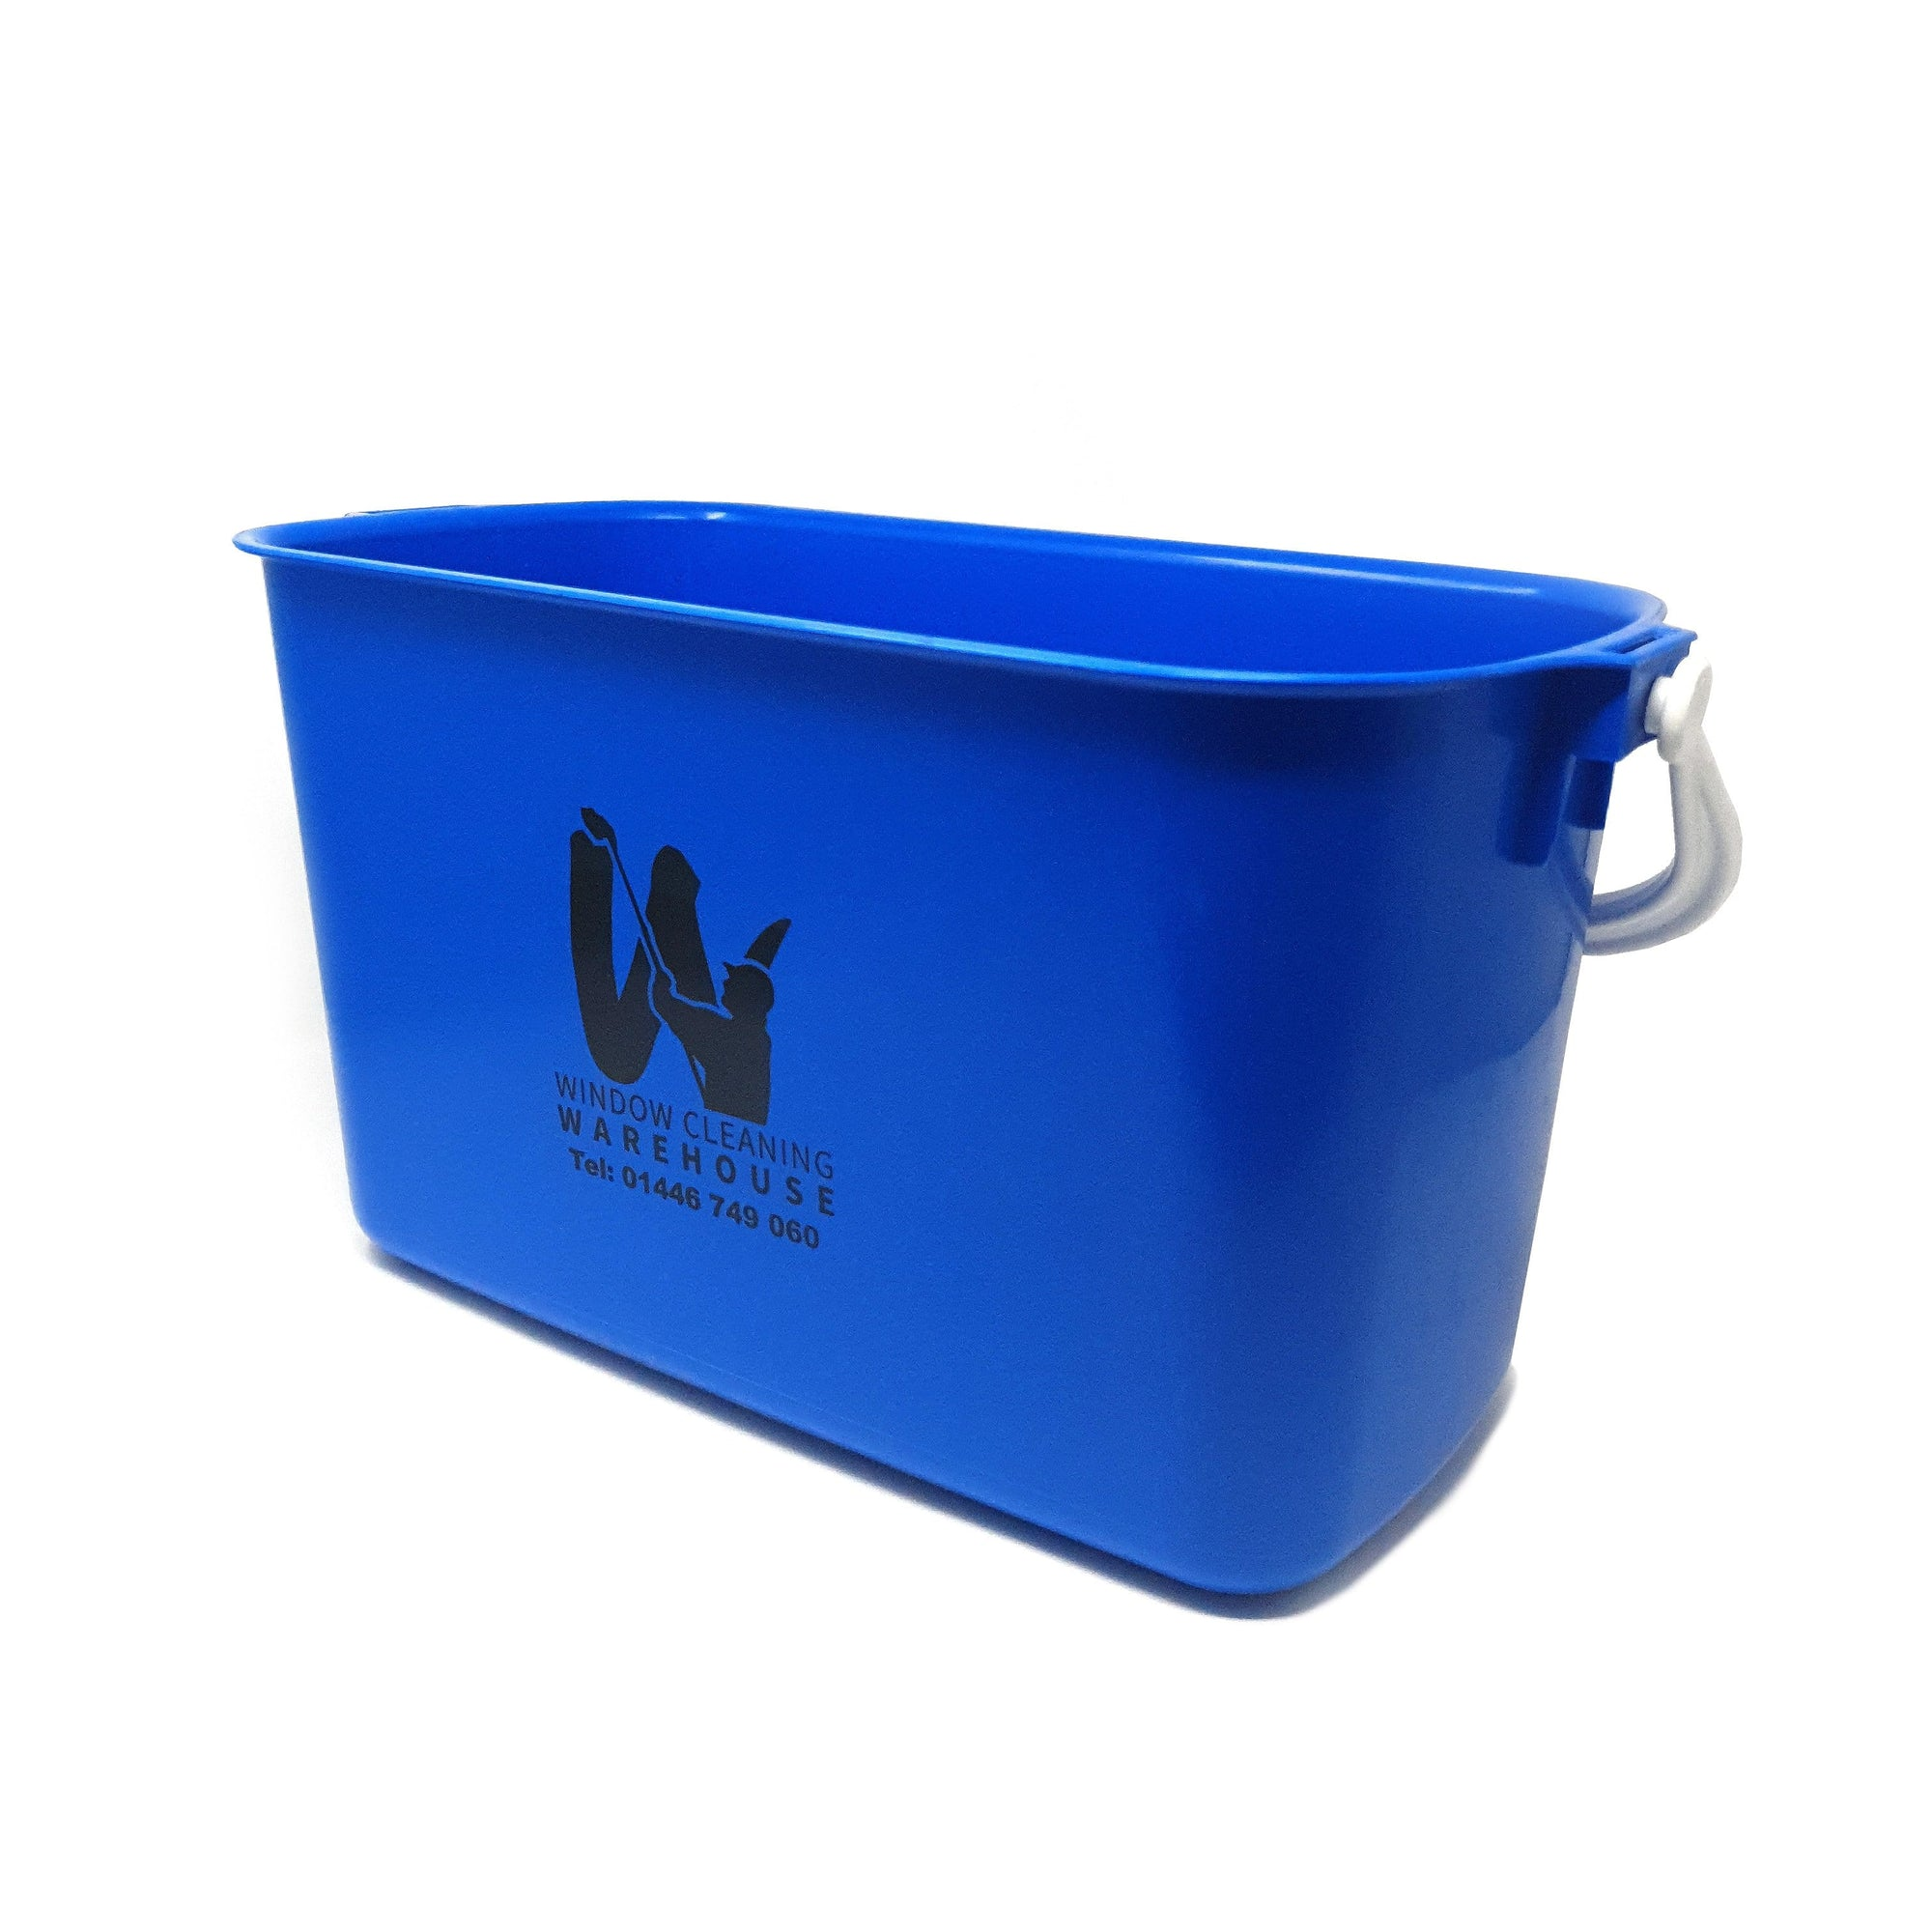 WCW Printed Bucket 9L - Window Cleaning Warehouse Ltd